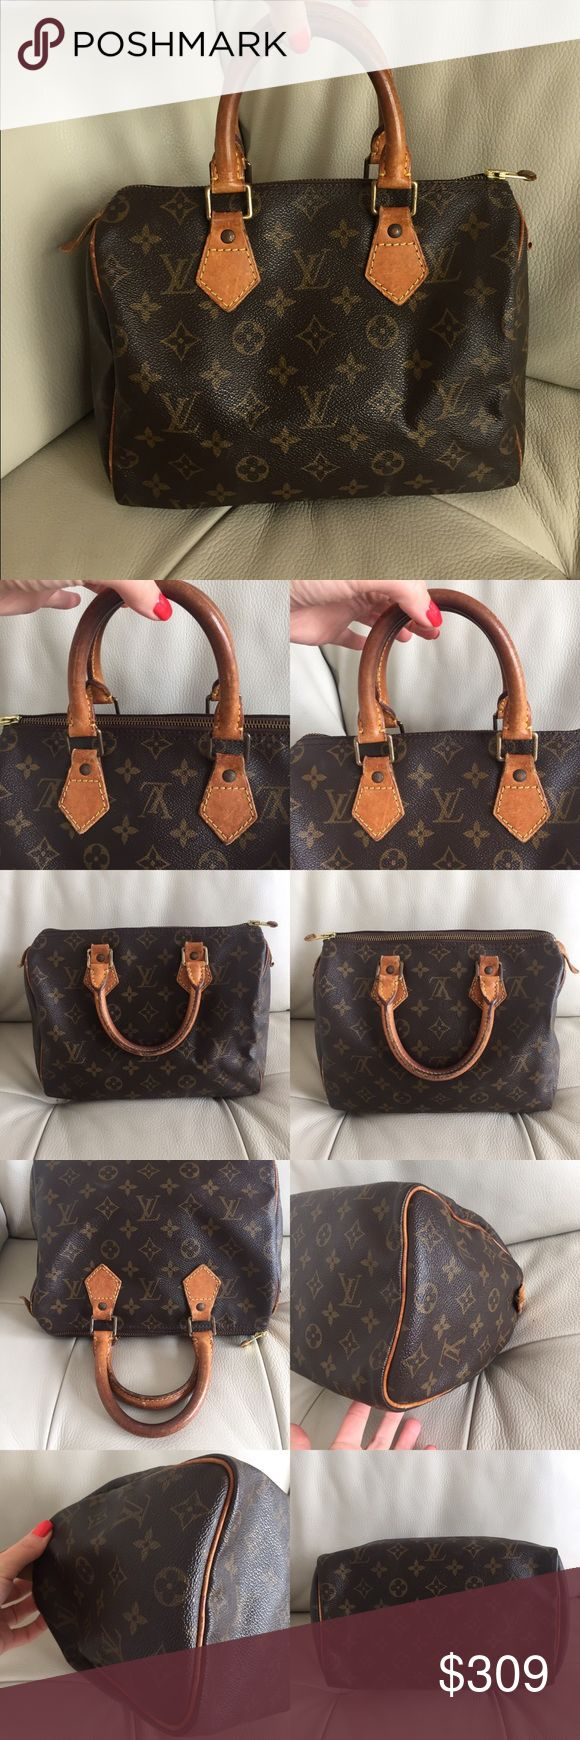 """💯Authentic Louis Vuitton Speedy 25 vintage bag Classic LV vintage. Leather handles and trims have scratches, fine cracks, turned into honey patina and show wear. Inside is clean. No bad odor. Monogram canvas is still intact, no rips or tears. Measuraments: W10 x H7.5 x D6""""(Approx) - made in France in April, 1994 - Date code: TH0944 - selling only the bag. No locks. Condition like pictures. 100% Authentic. Louis Vuitton Bags Satchels"""